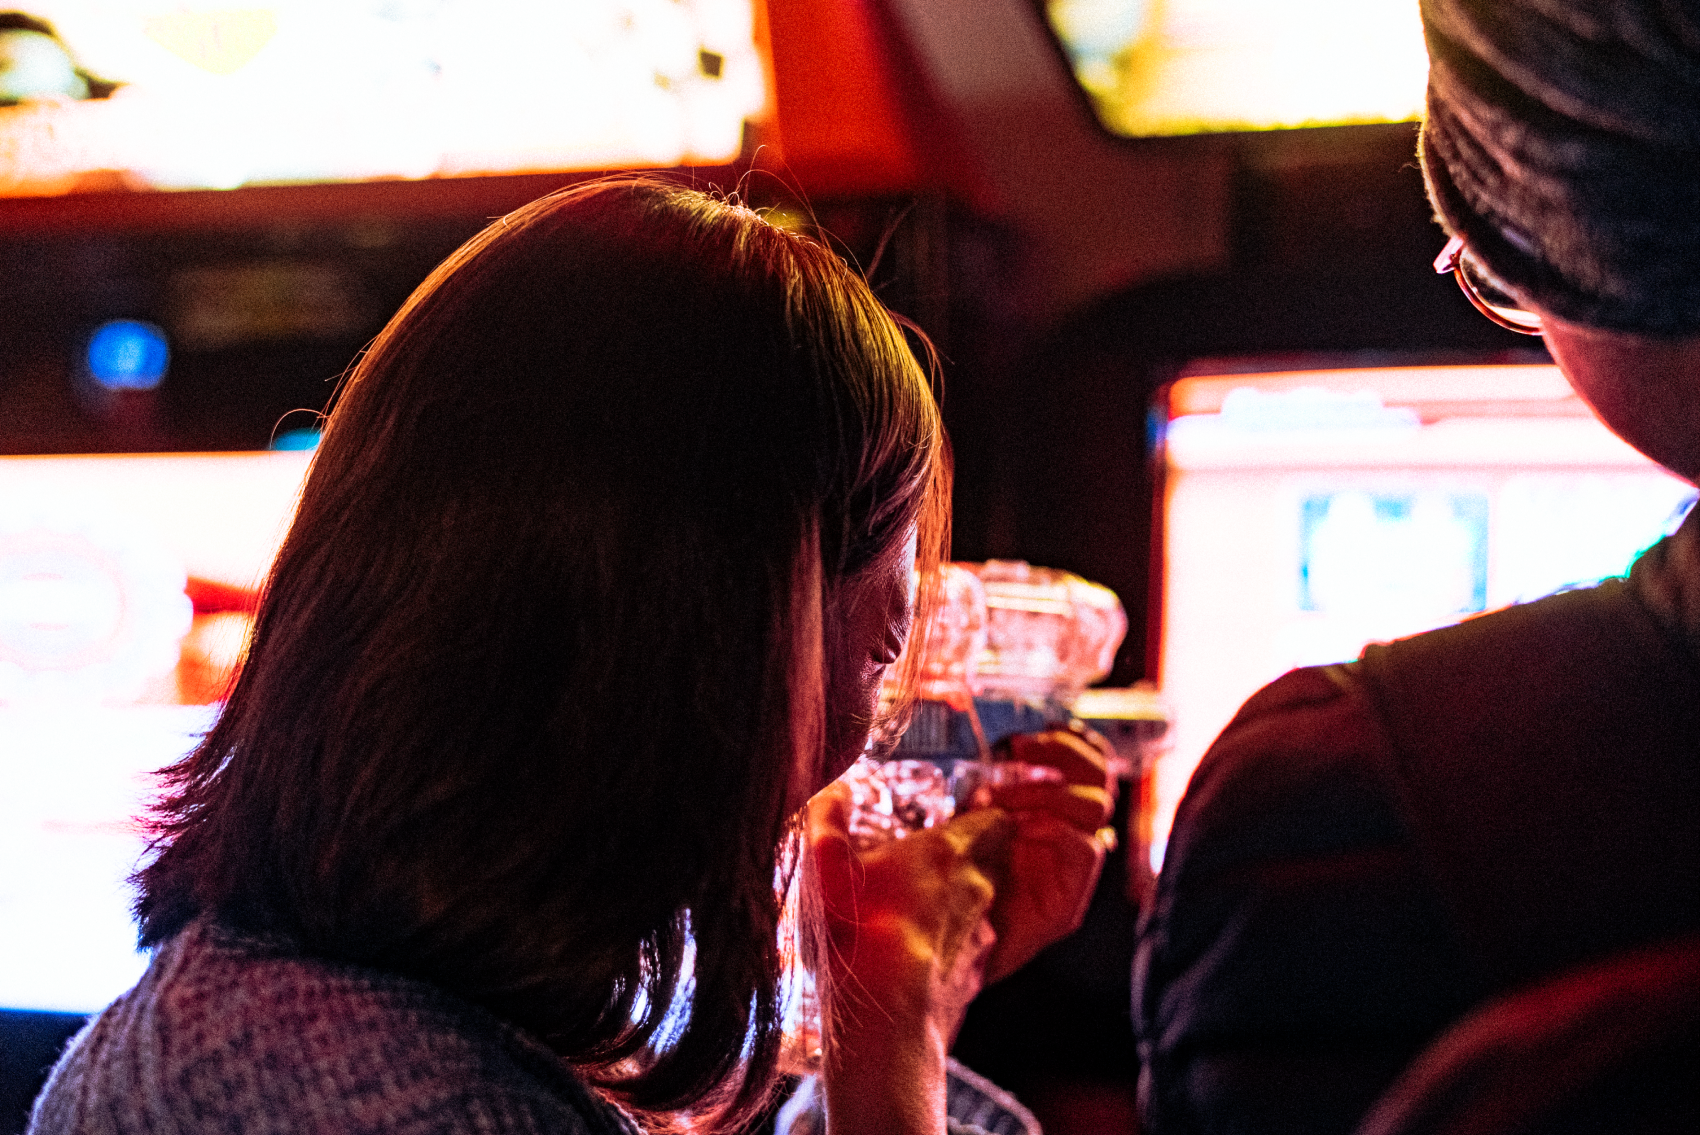 A woman playing a shooting game at an arcade